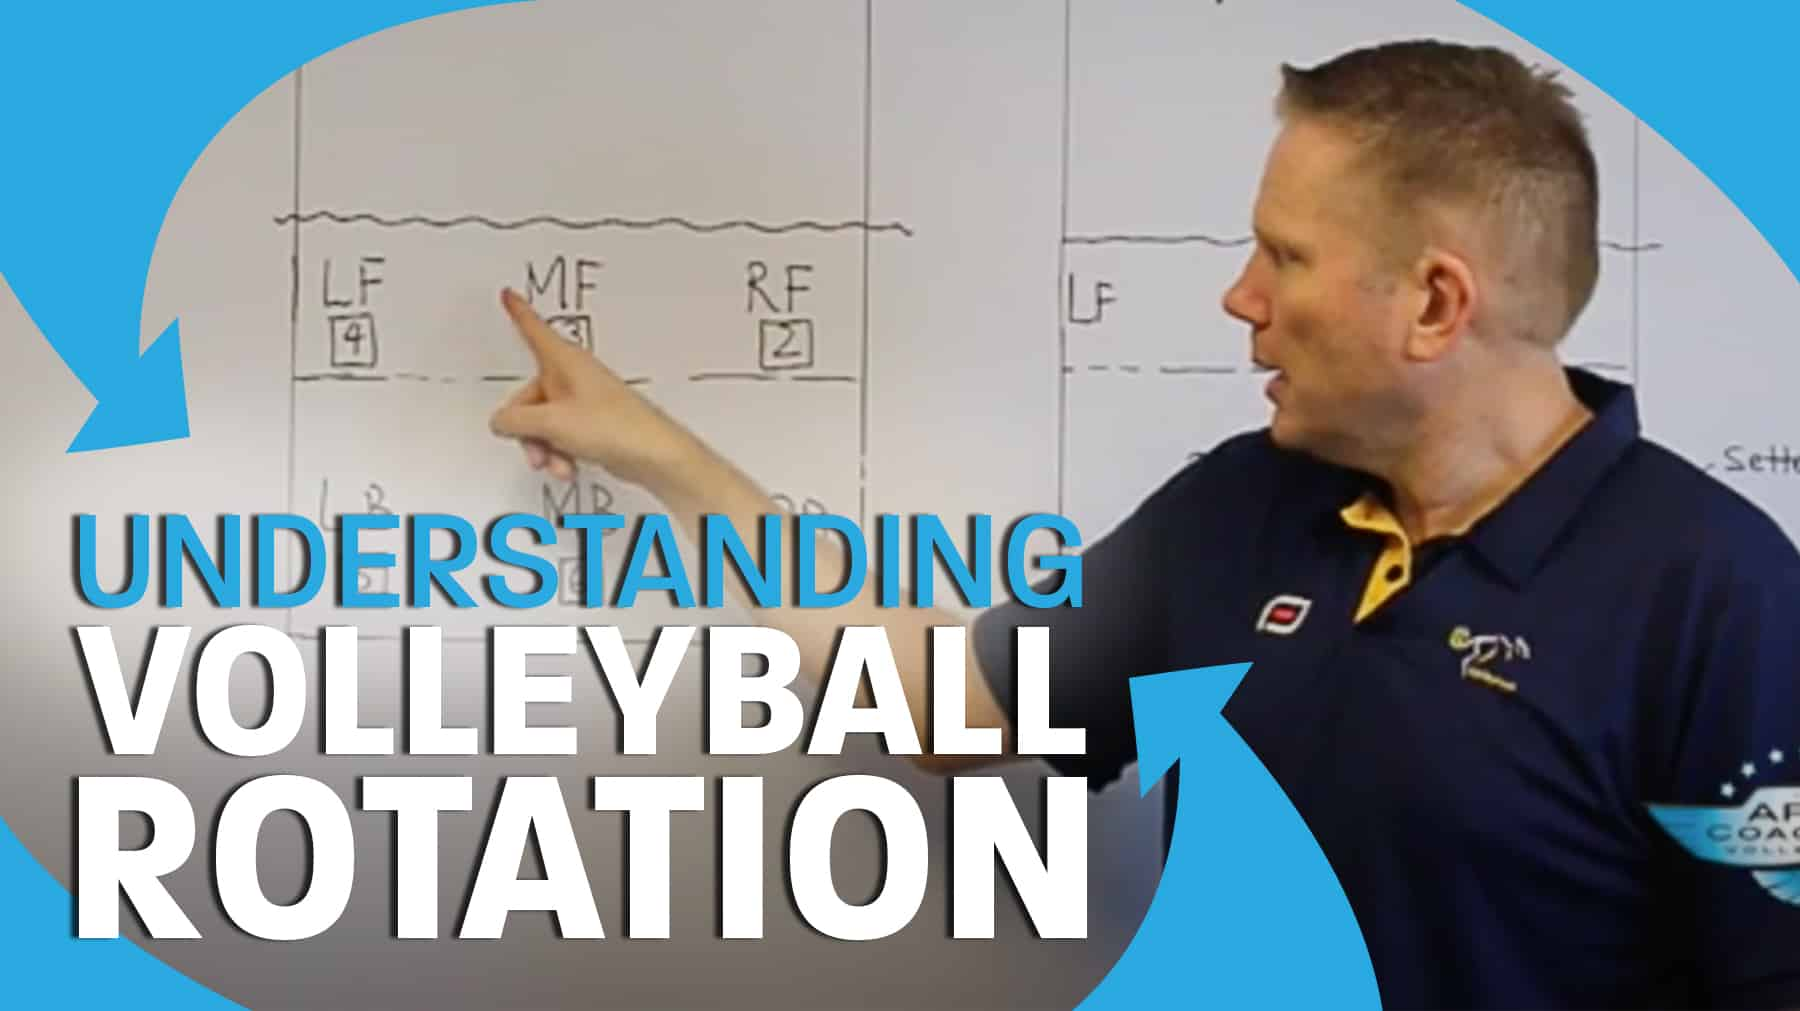 Volleyball rotation: The basics